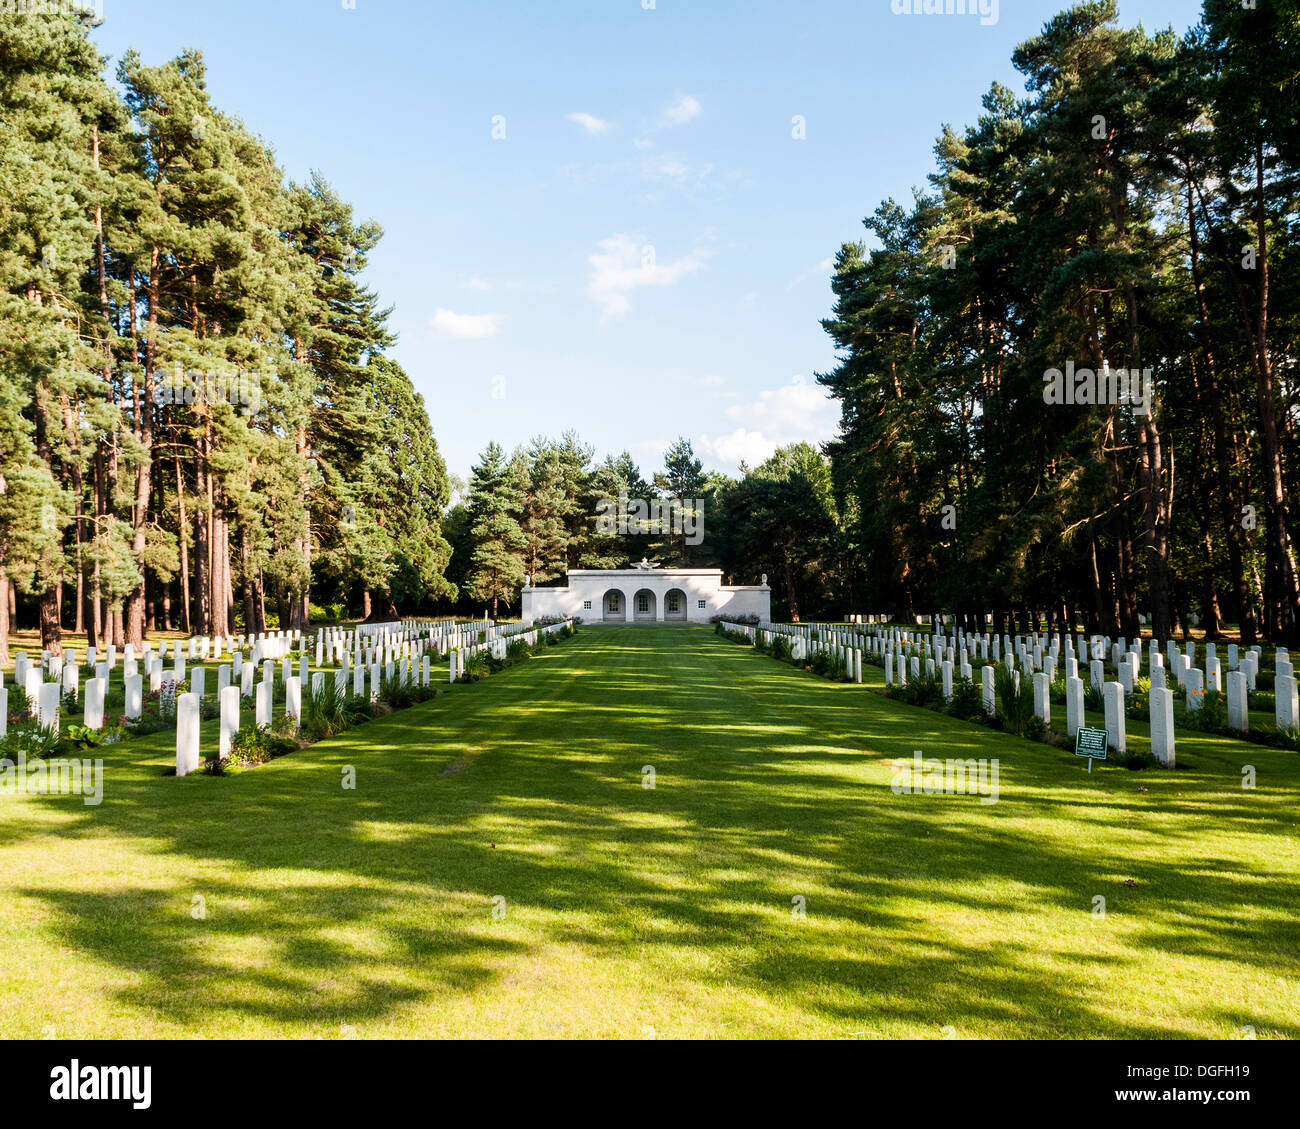 Brookwood Military Cemetery And Memorials, Brookwood, United Kingdom. Architect: Unknown, 2013. Stock Photo